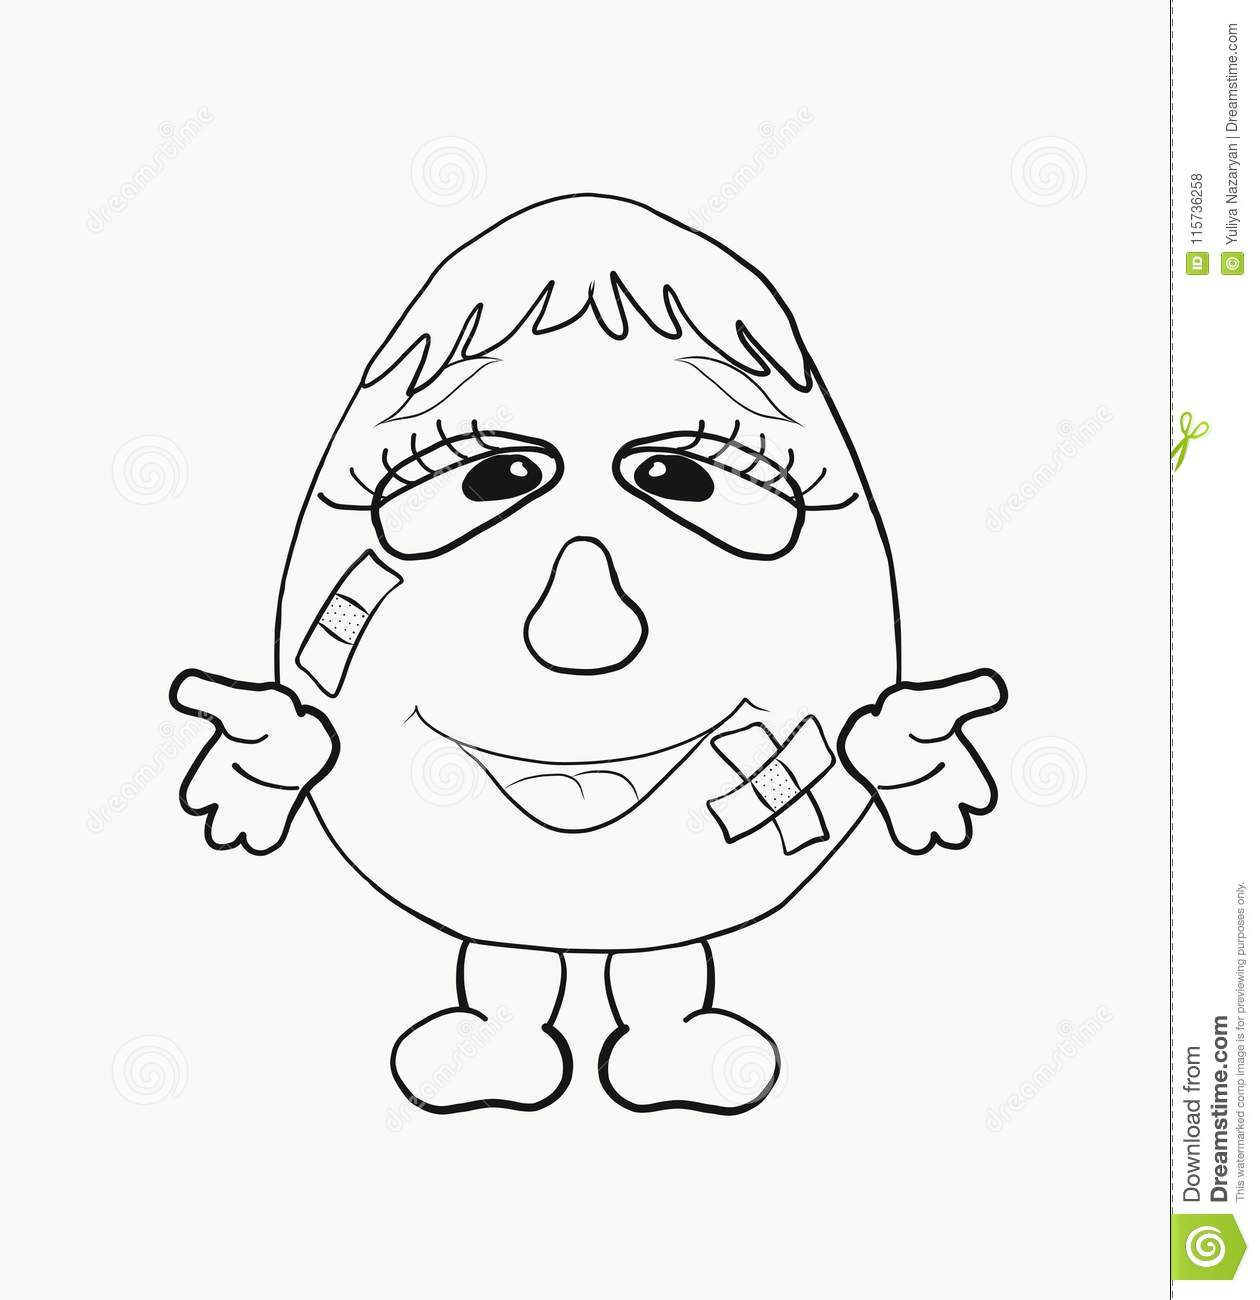 Coloring for kids, funny egg boy With wounds sealed with adhesive tape